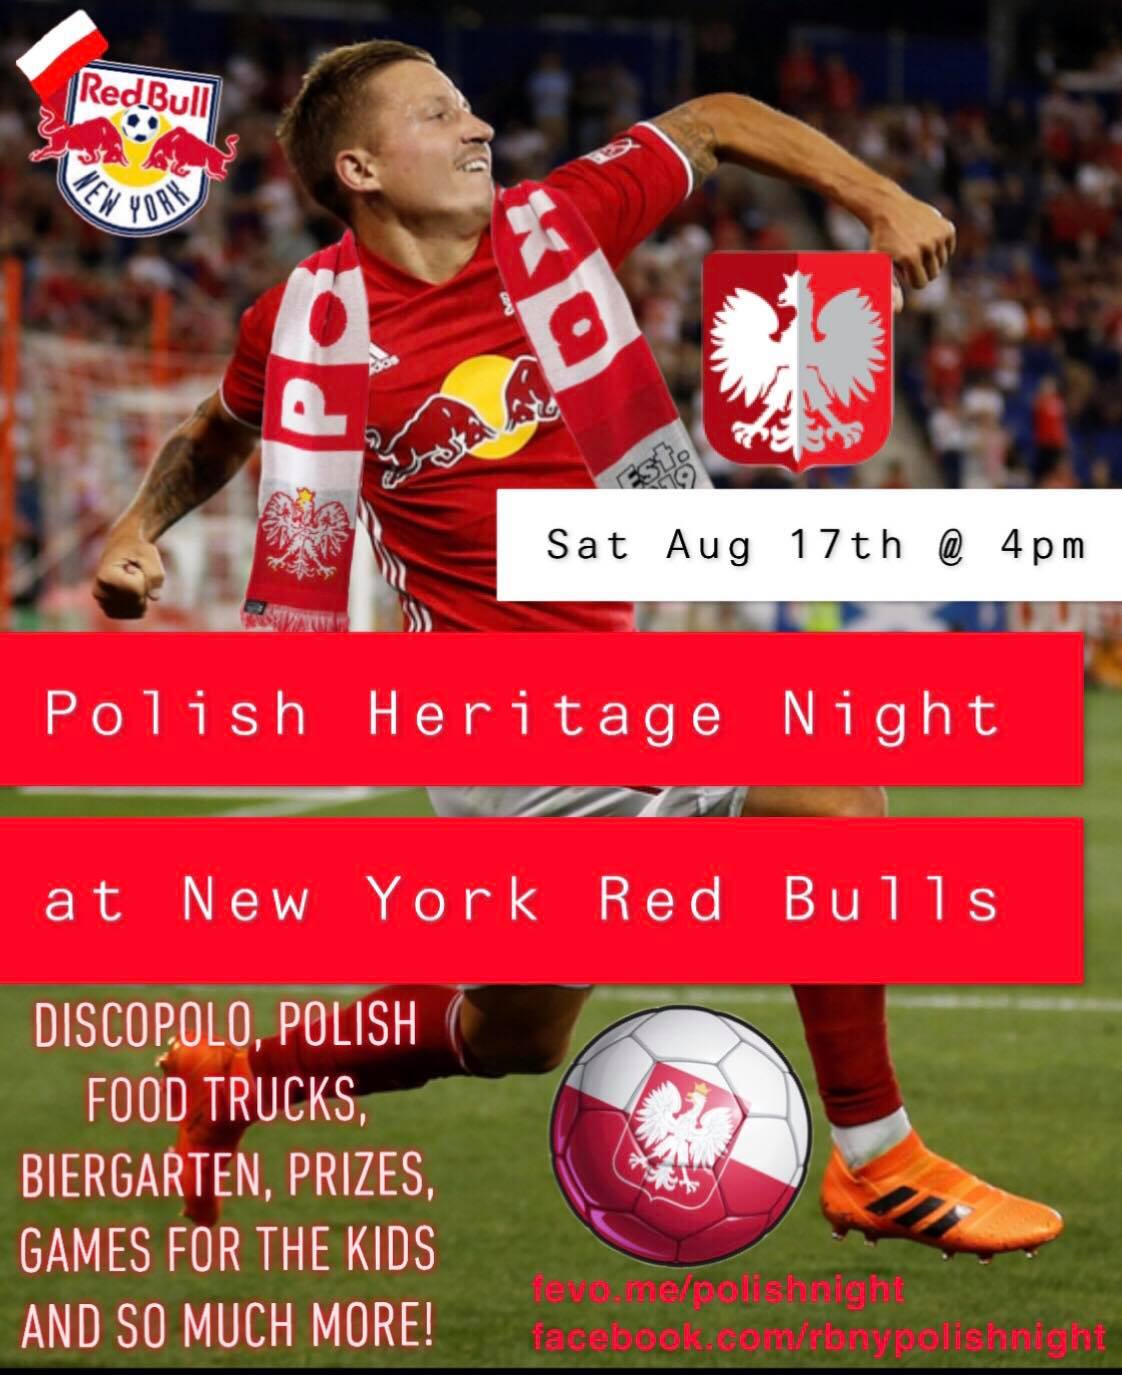 Polish Heritage Night 2019 at Red Bull Arena in Harrison, NJ